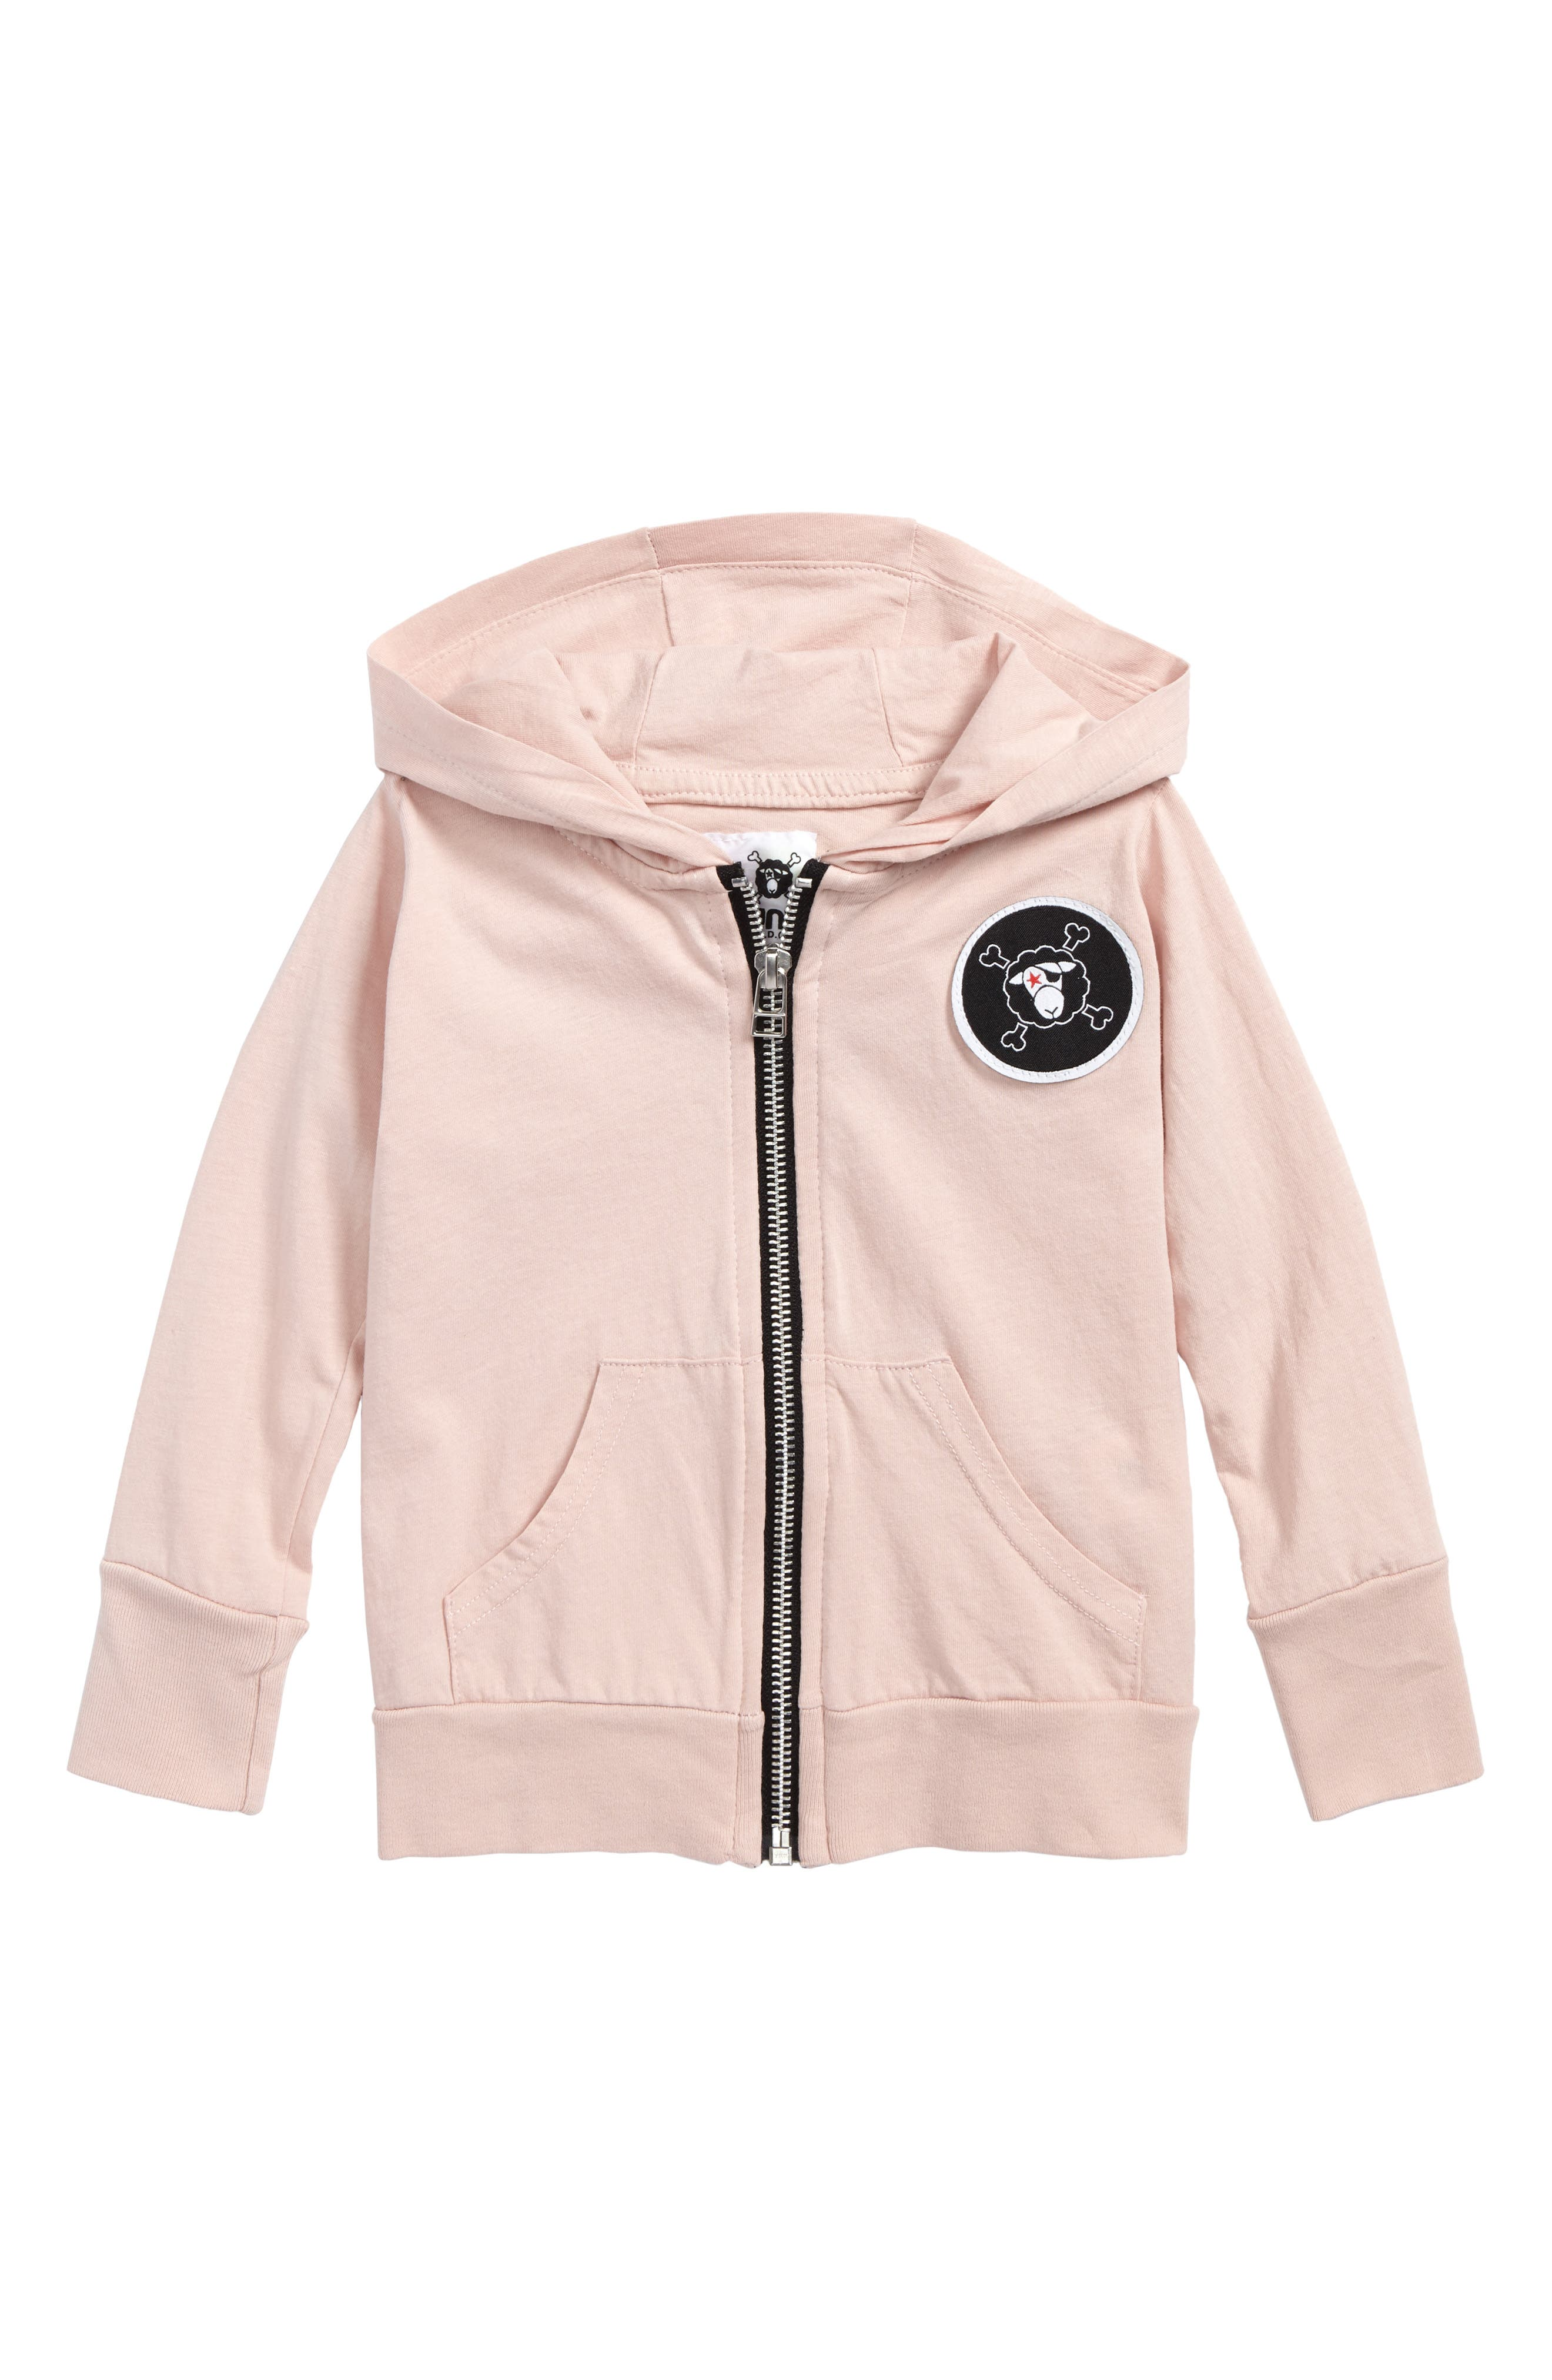 Patch Hoodie,                             Main thumbnail 1, color,                             Powder Pink